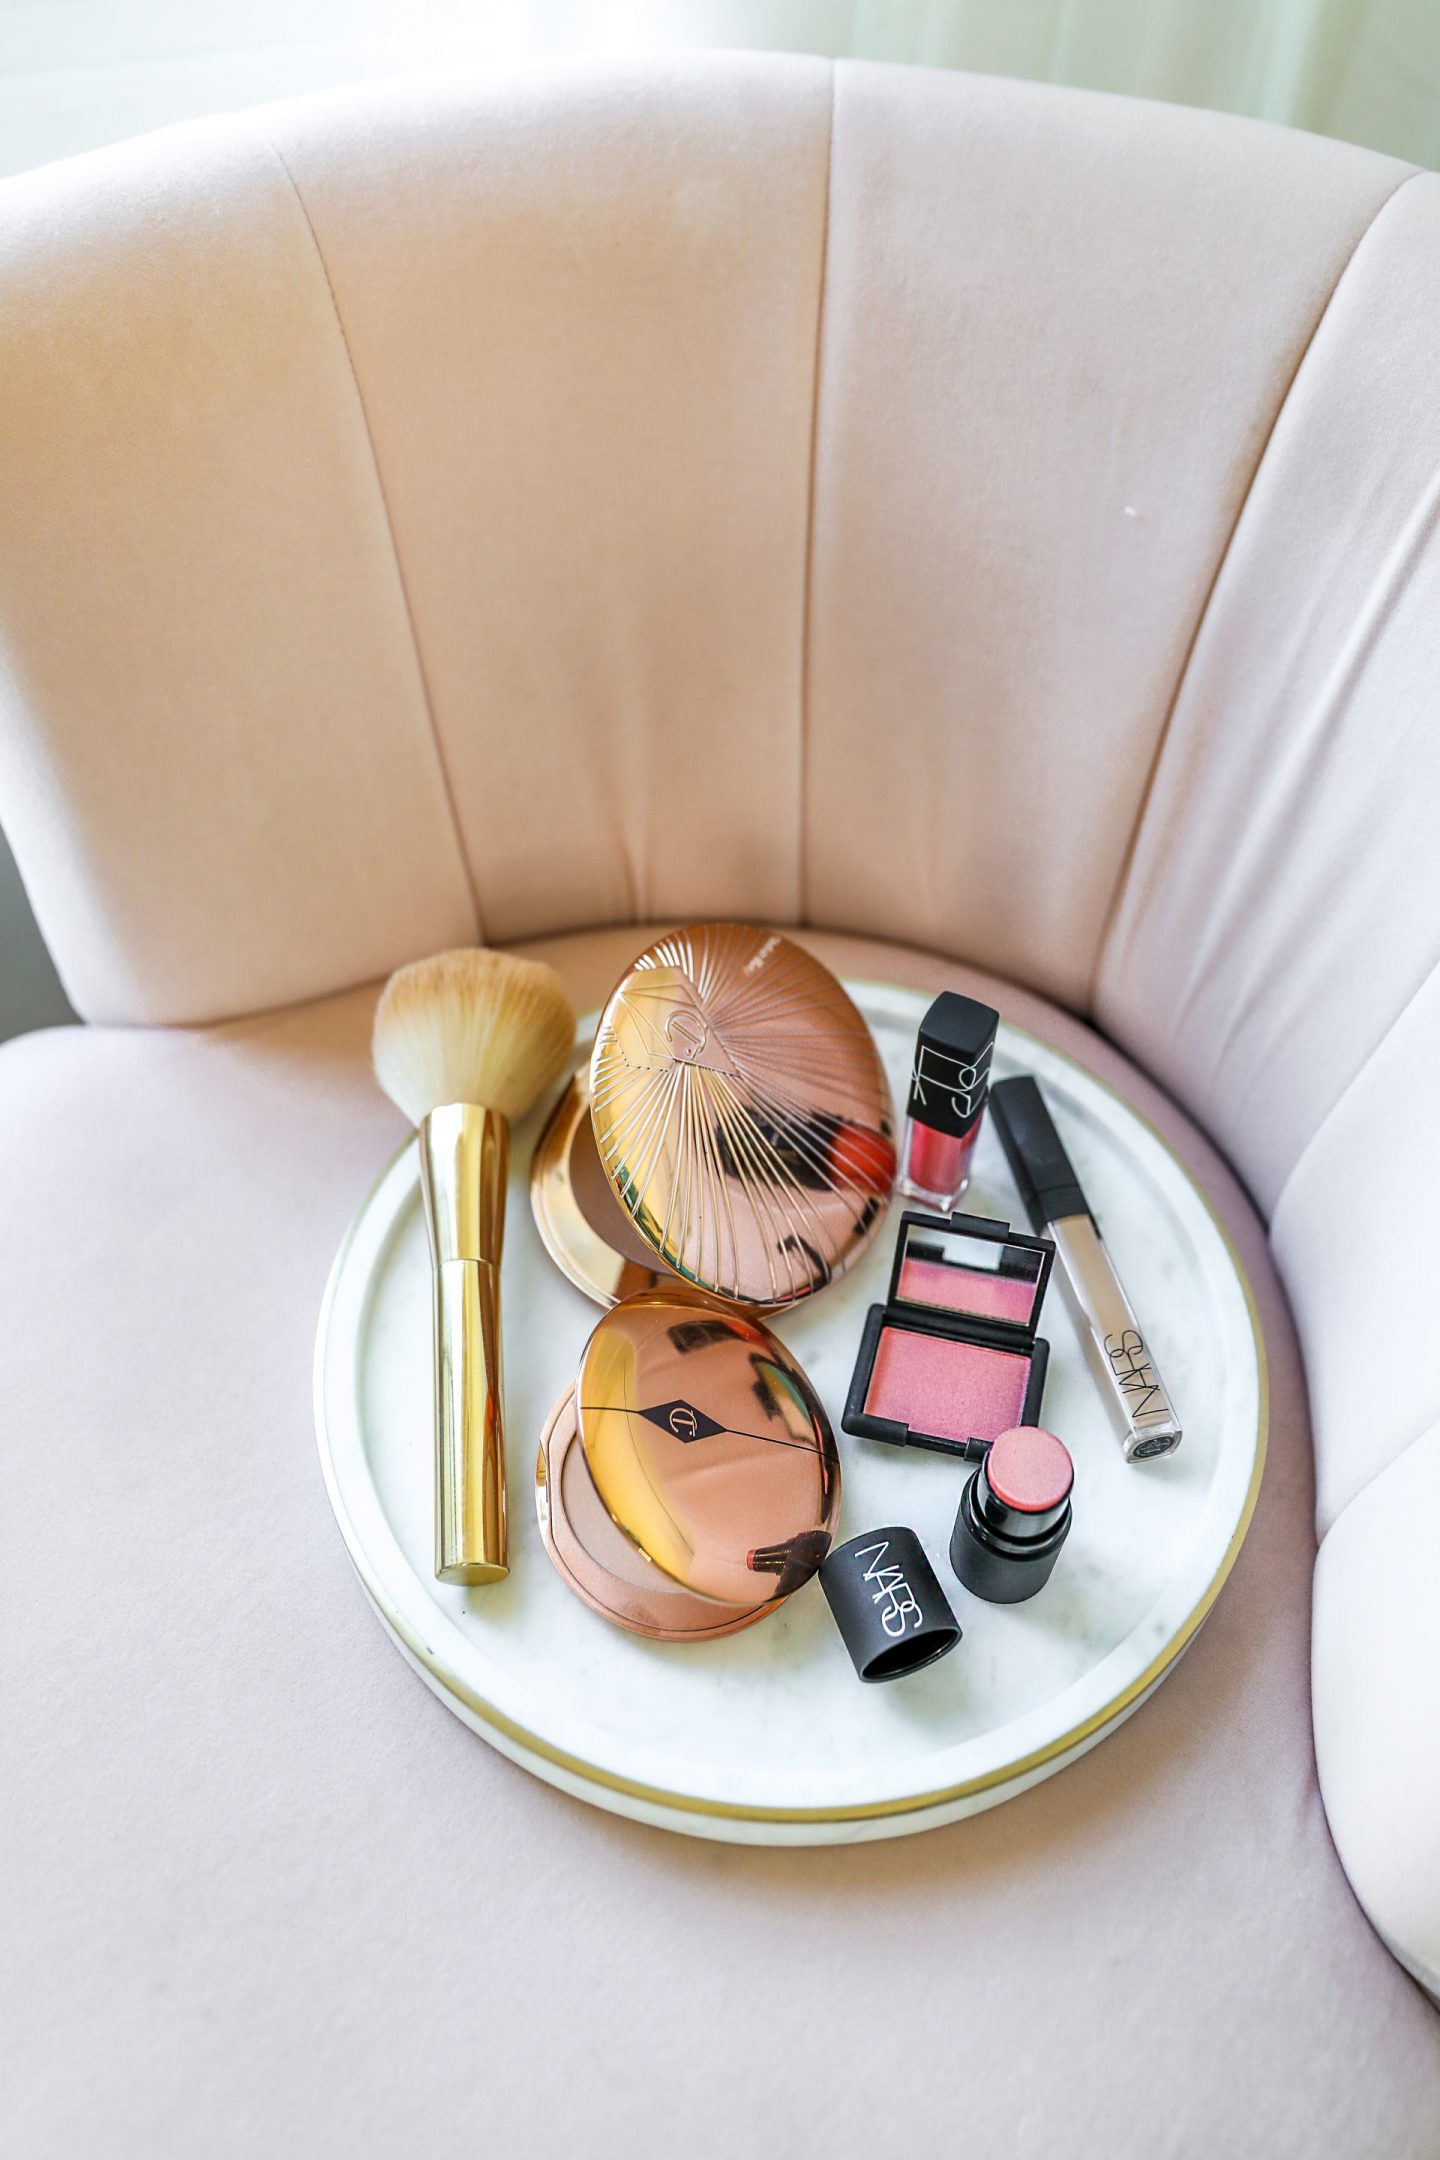 Nordstrom beauty, best make up sets for fall, NARS Charlotte Tilbury, by San Francisco fashion blogger Lombard & Fifth.